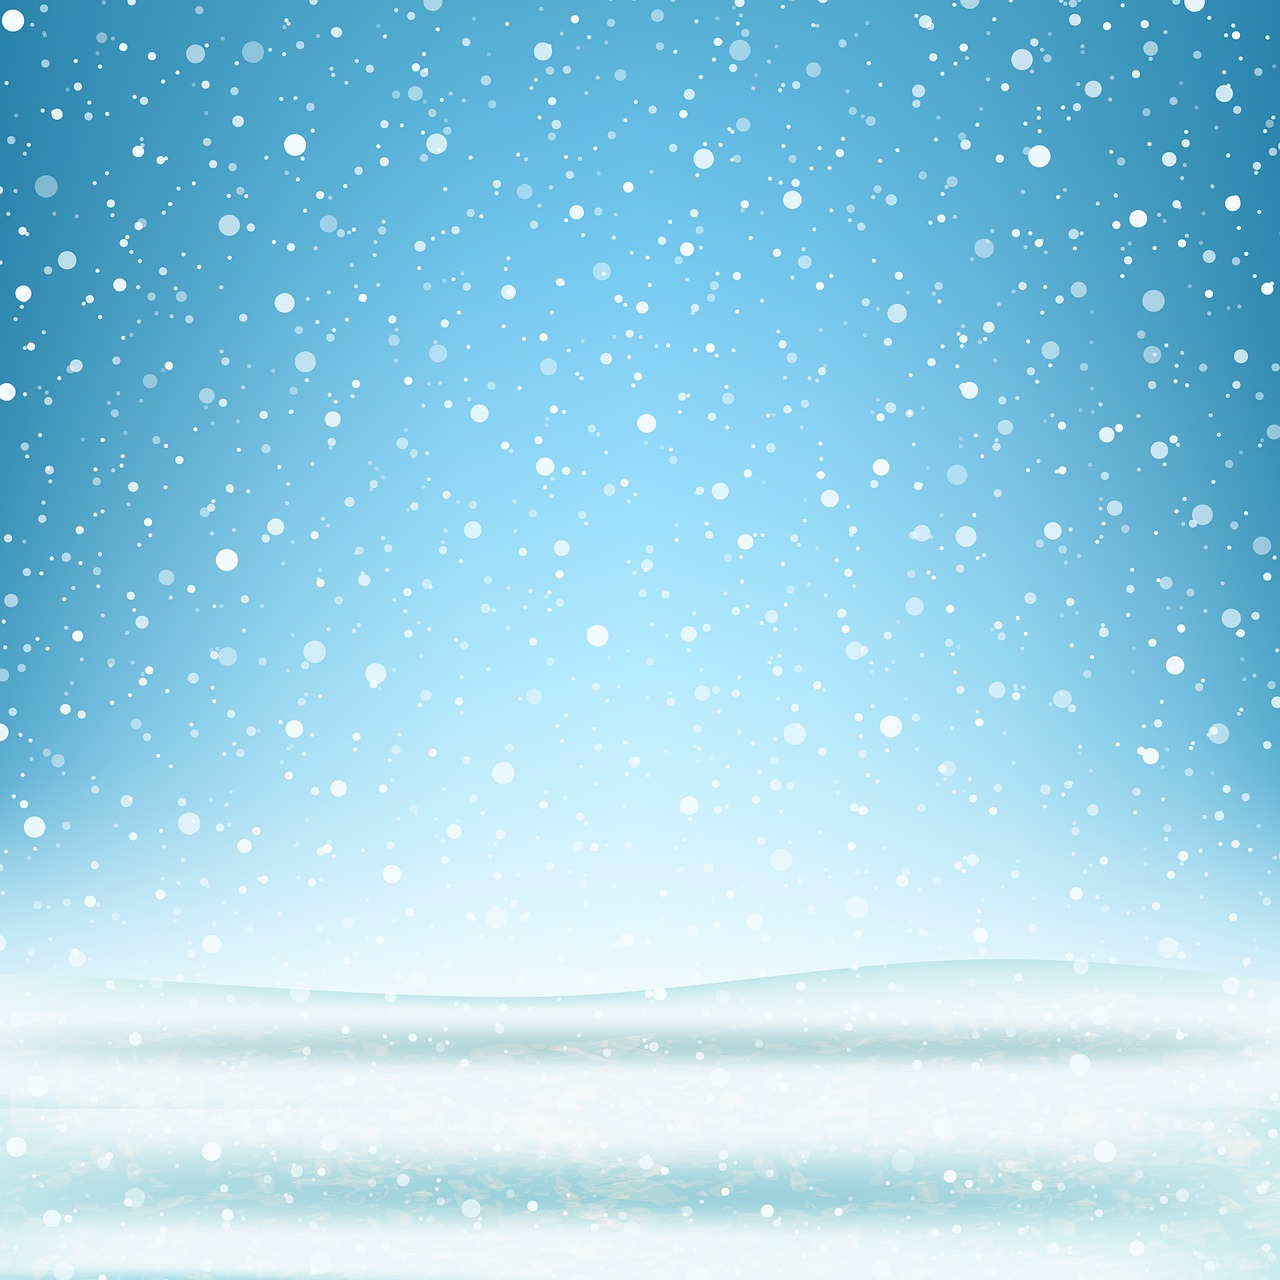 Winter Background Snow Christmas Free Image On Pixabay